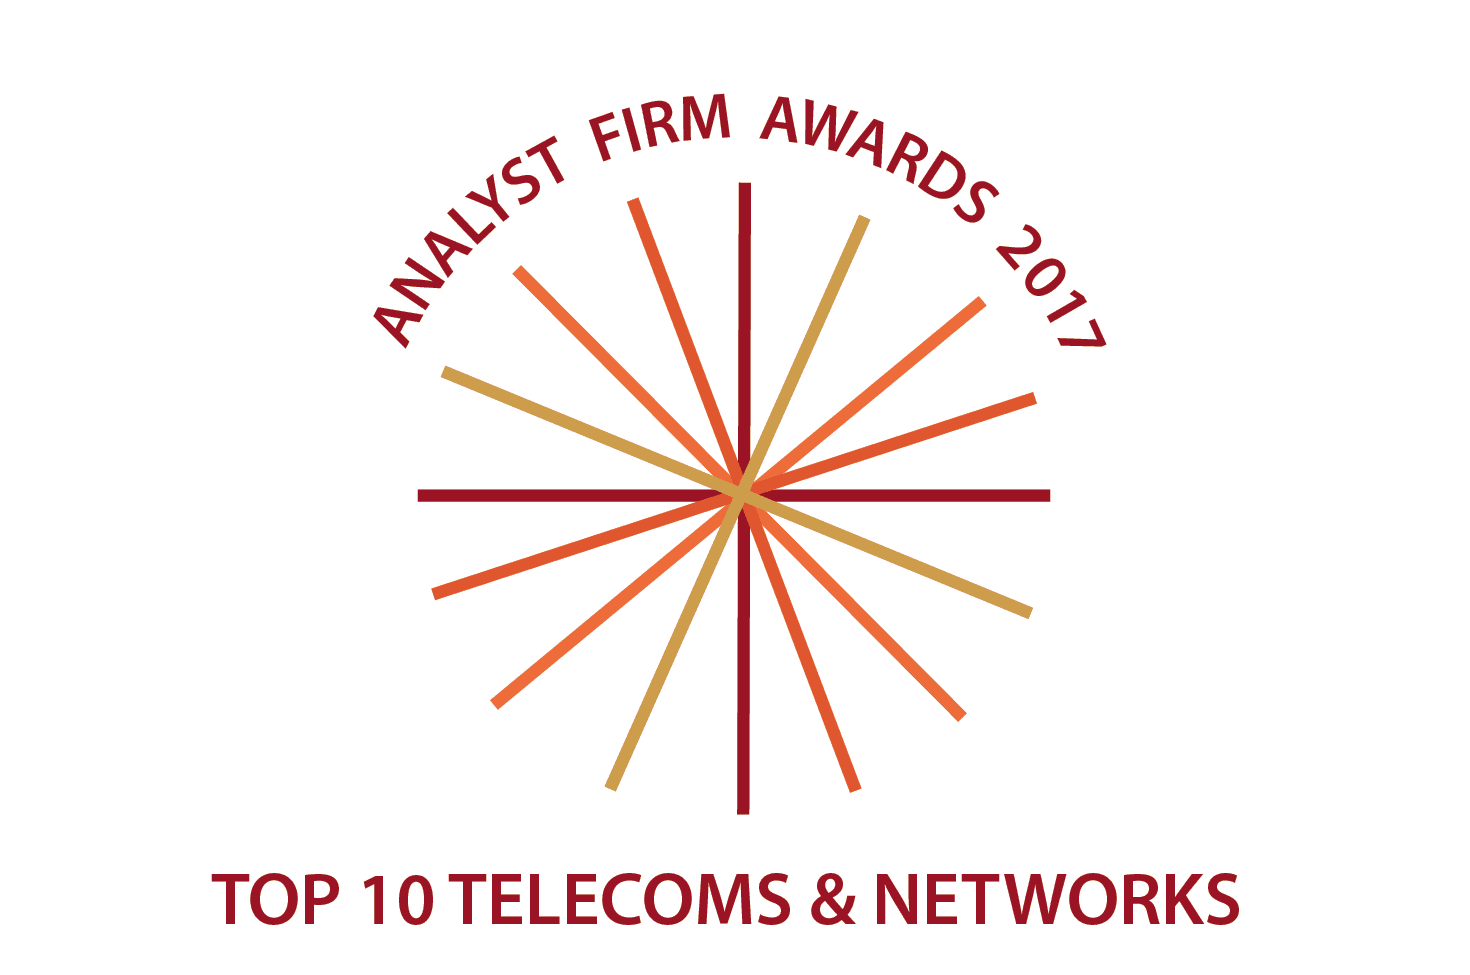 CXP catches up with Ovum in 2017 Telecoms & Networking Analyst Firm Awards